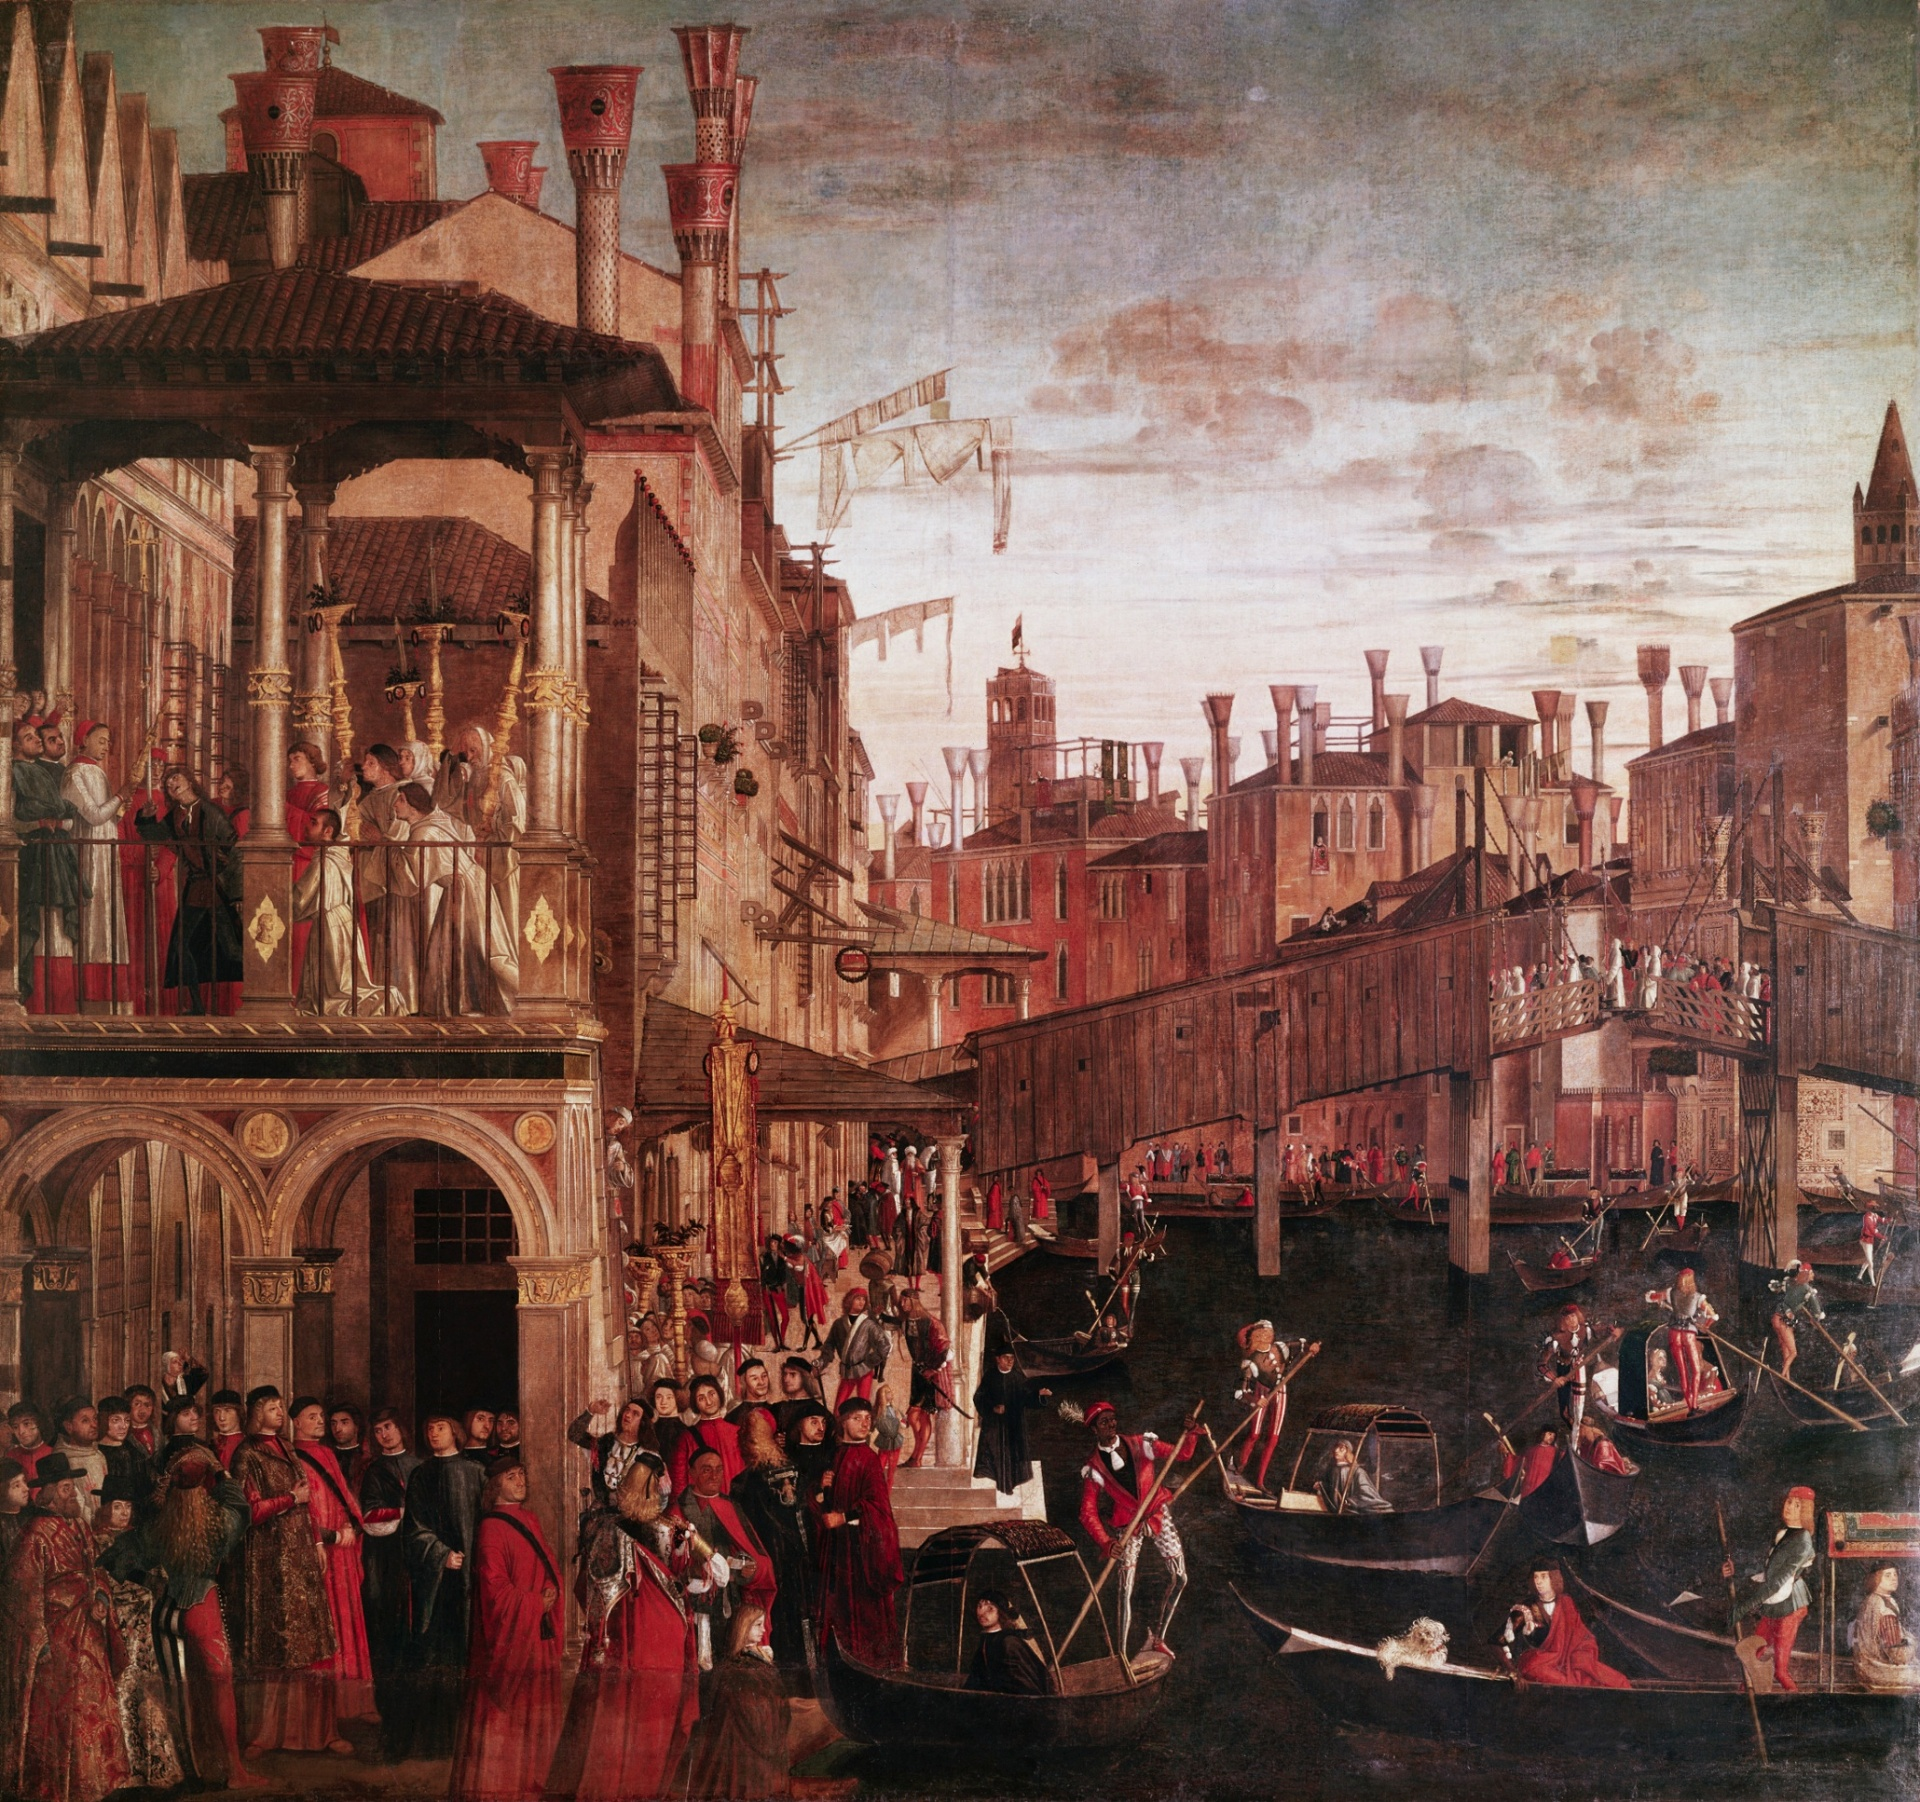 Vittore Carpaccio – The Healing of the Possessed Man at the Rialto (c. 1496)